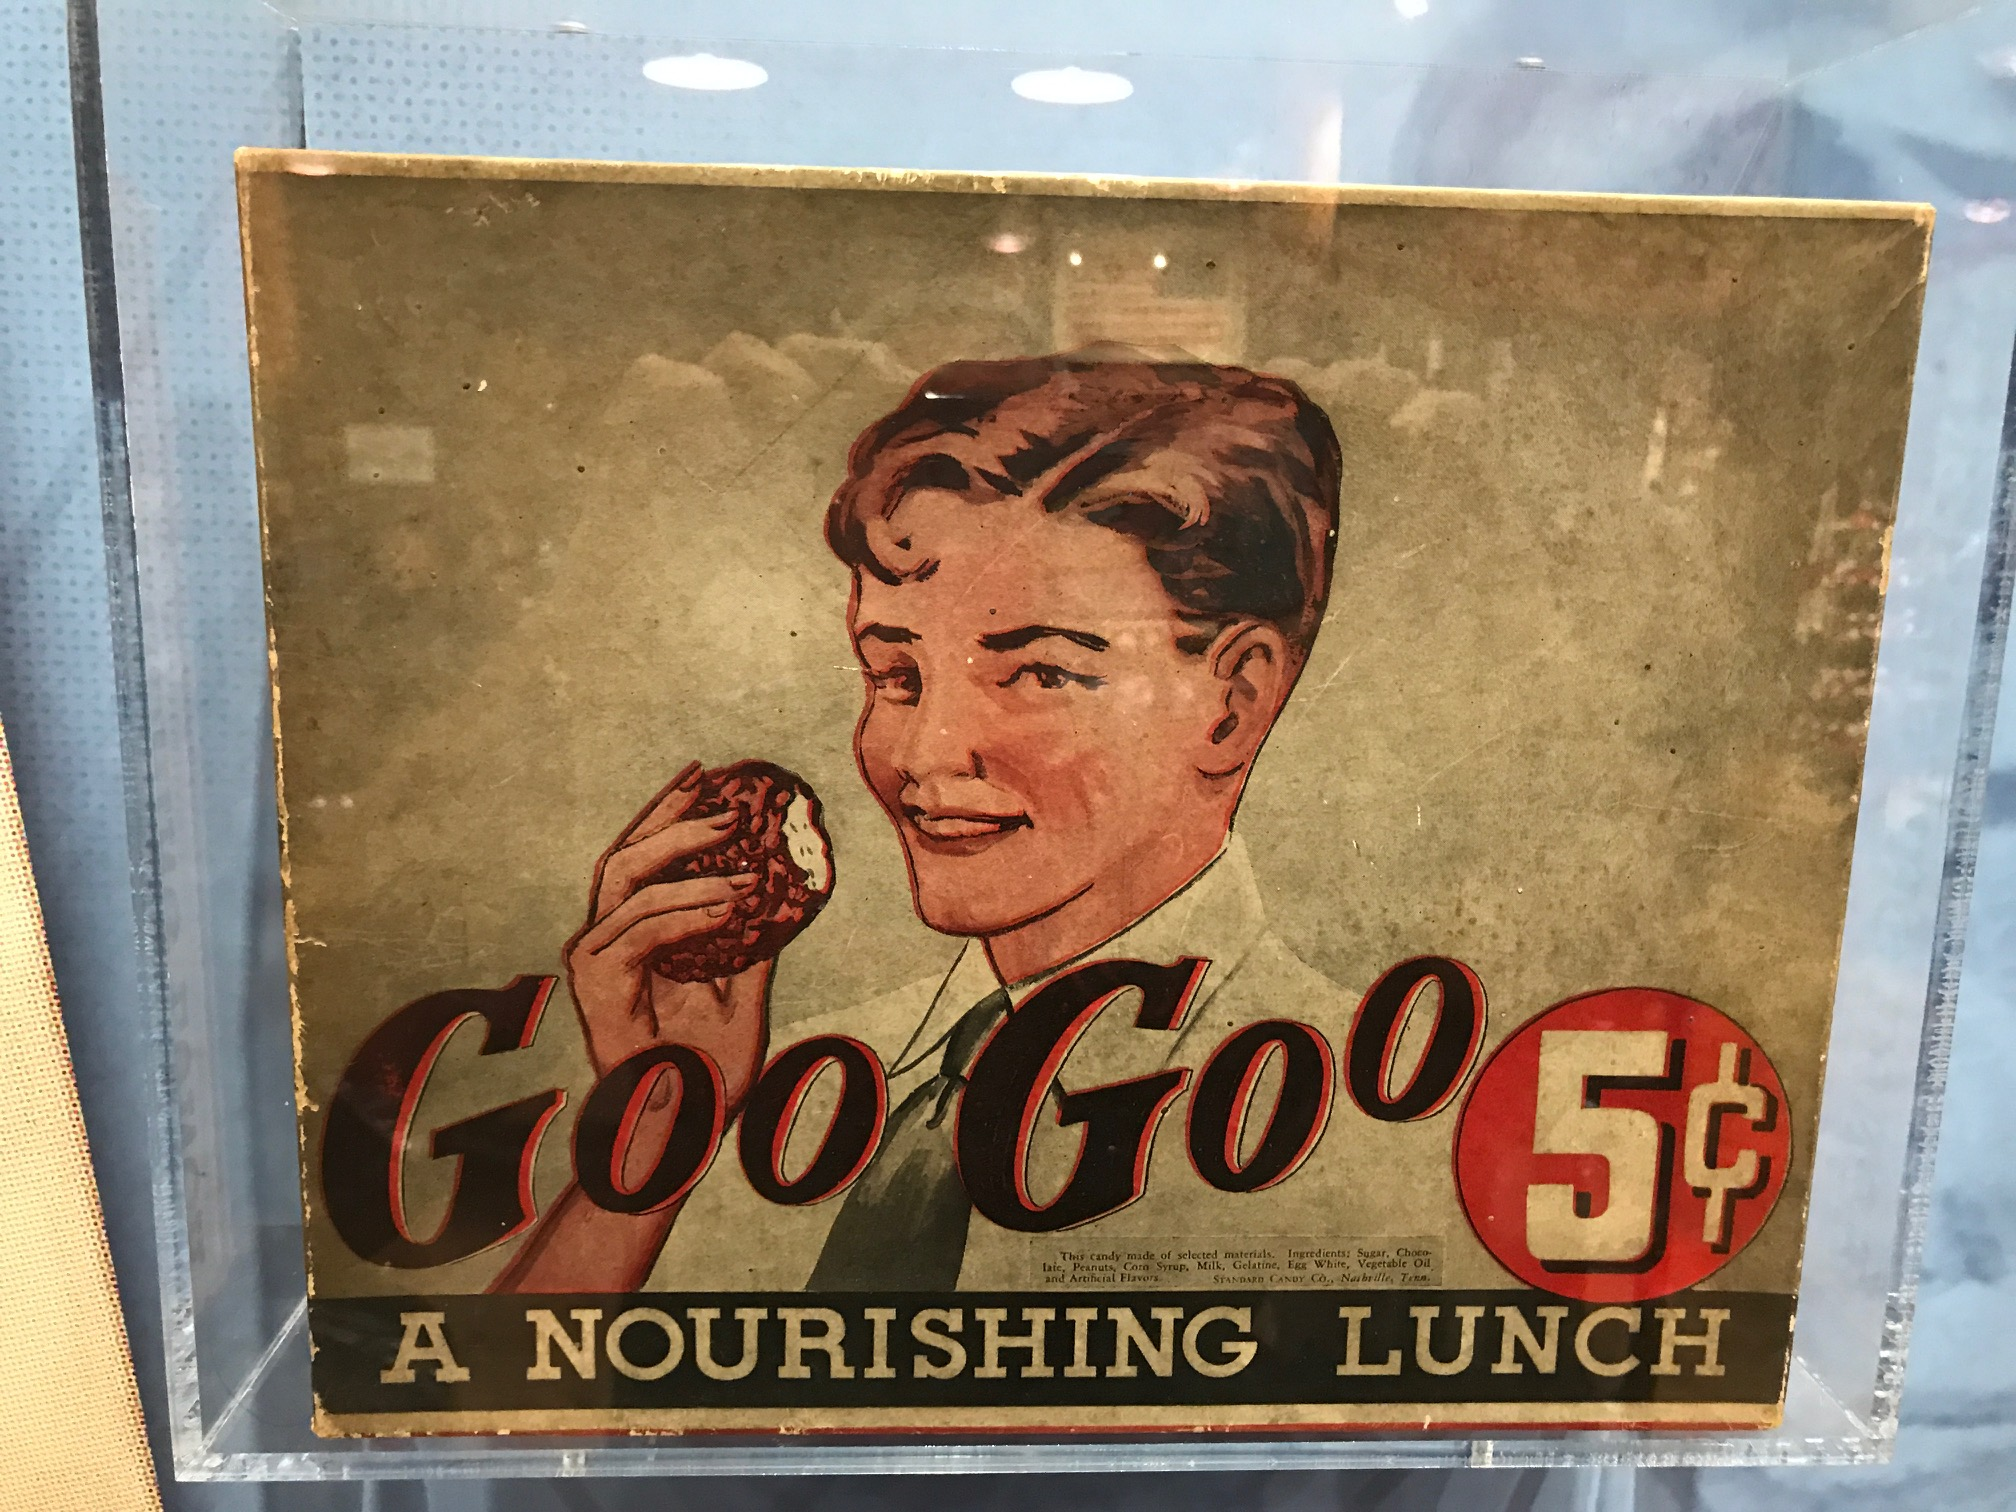 The GooGoo Cluster is an American candy bar created in 1912 by Howell Campbell and the Standard Candy Company in Nashville. The original disk-shaped candy bar contained marshmellow, nougat, carmel and roasted peanuts covered in milk chocolate.  And, yes it was marketed as nourishing lunch treat.